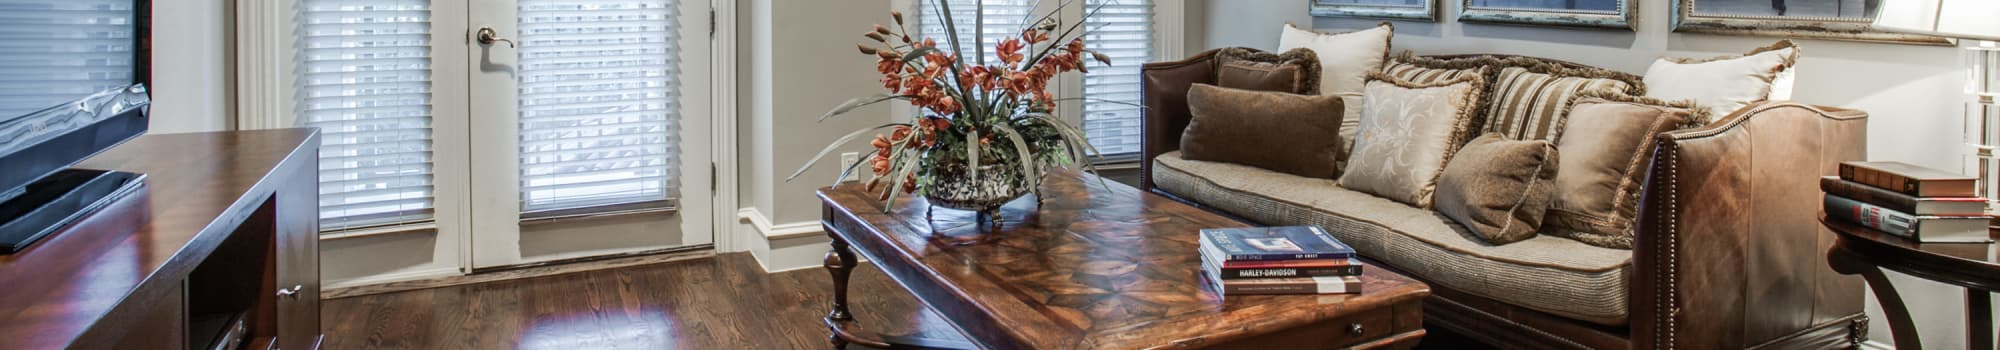 Photos of Rienzi at Turtle Creek Apartments in Dallas, Texas